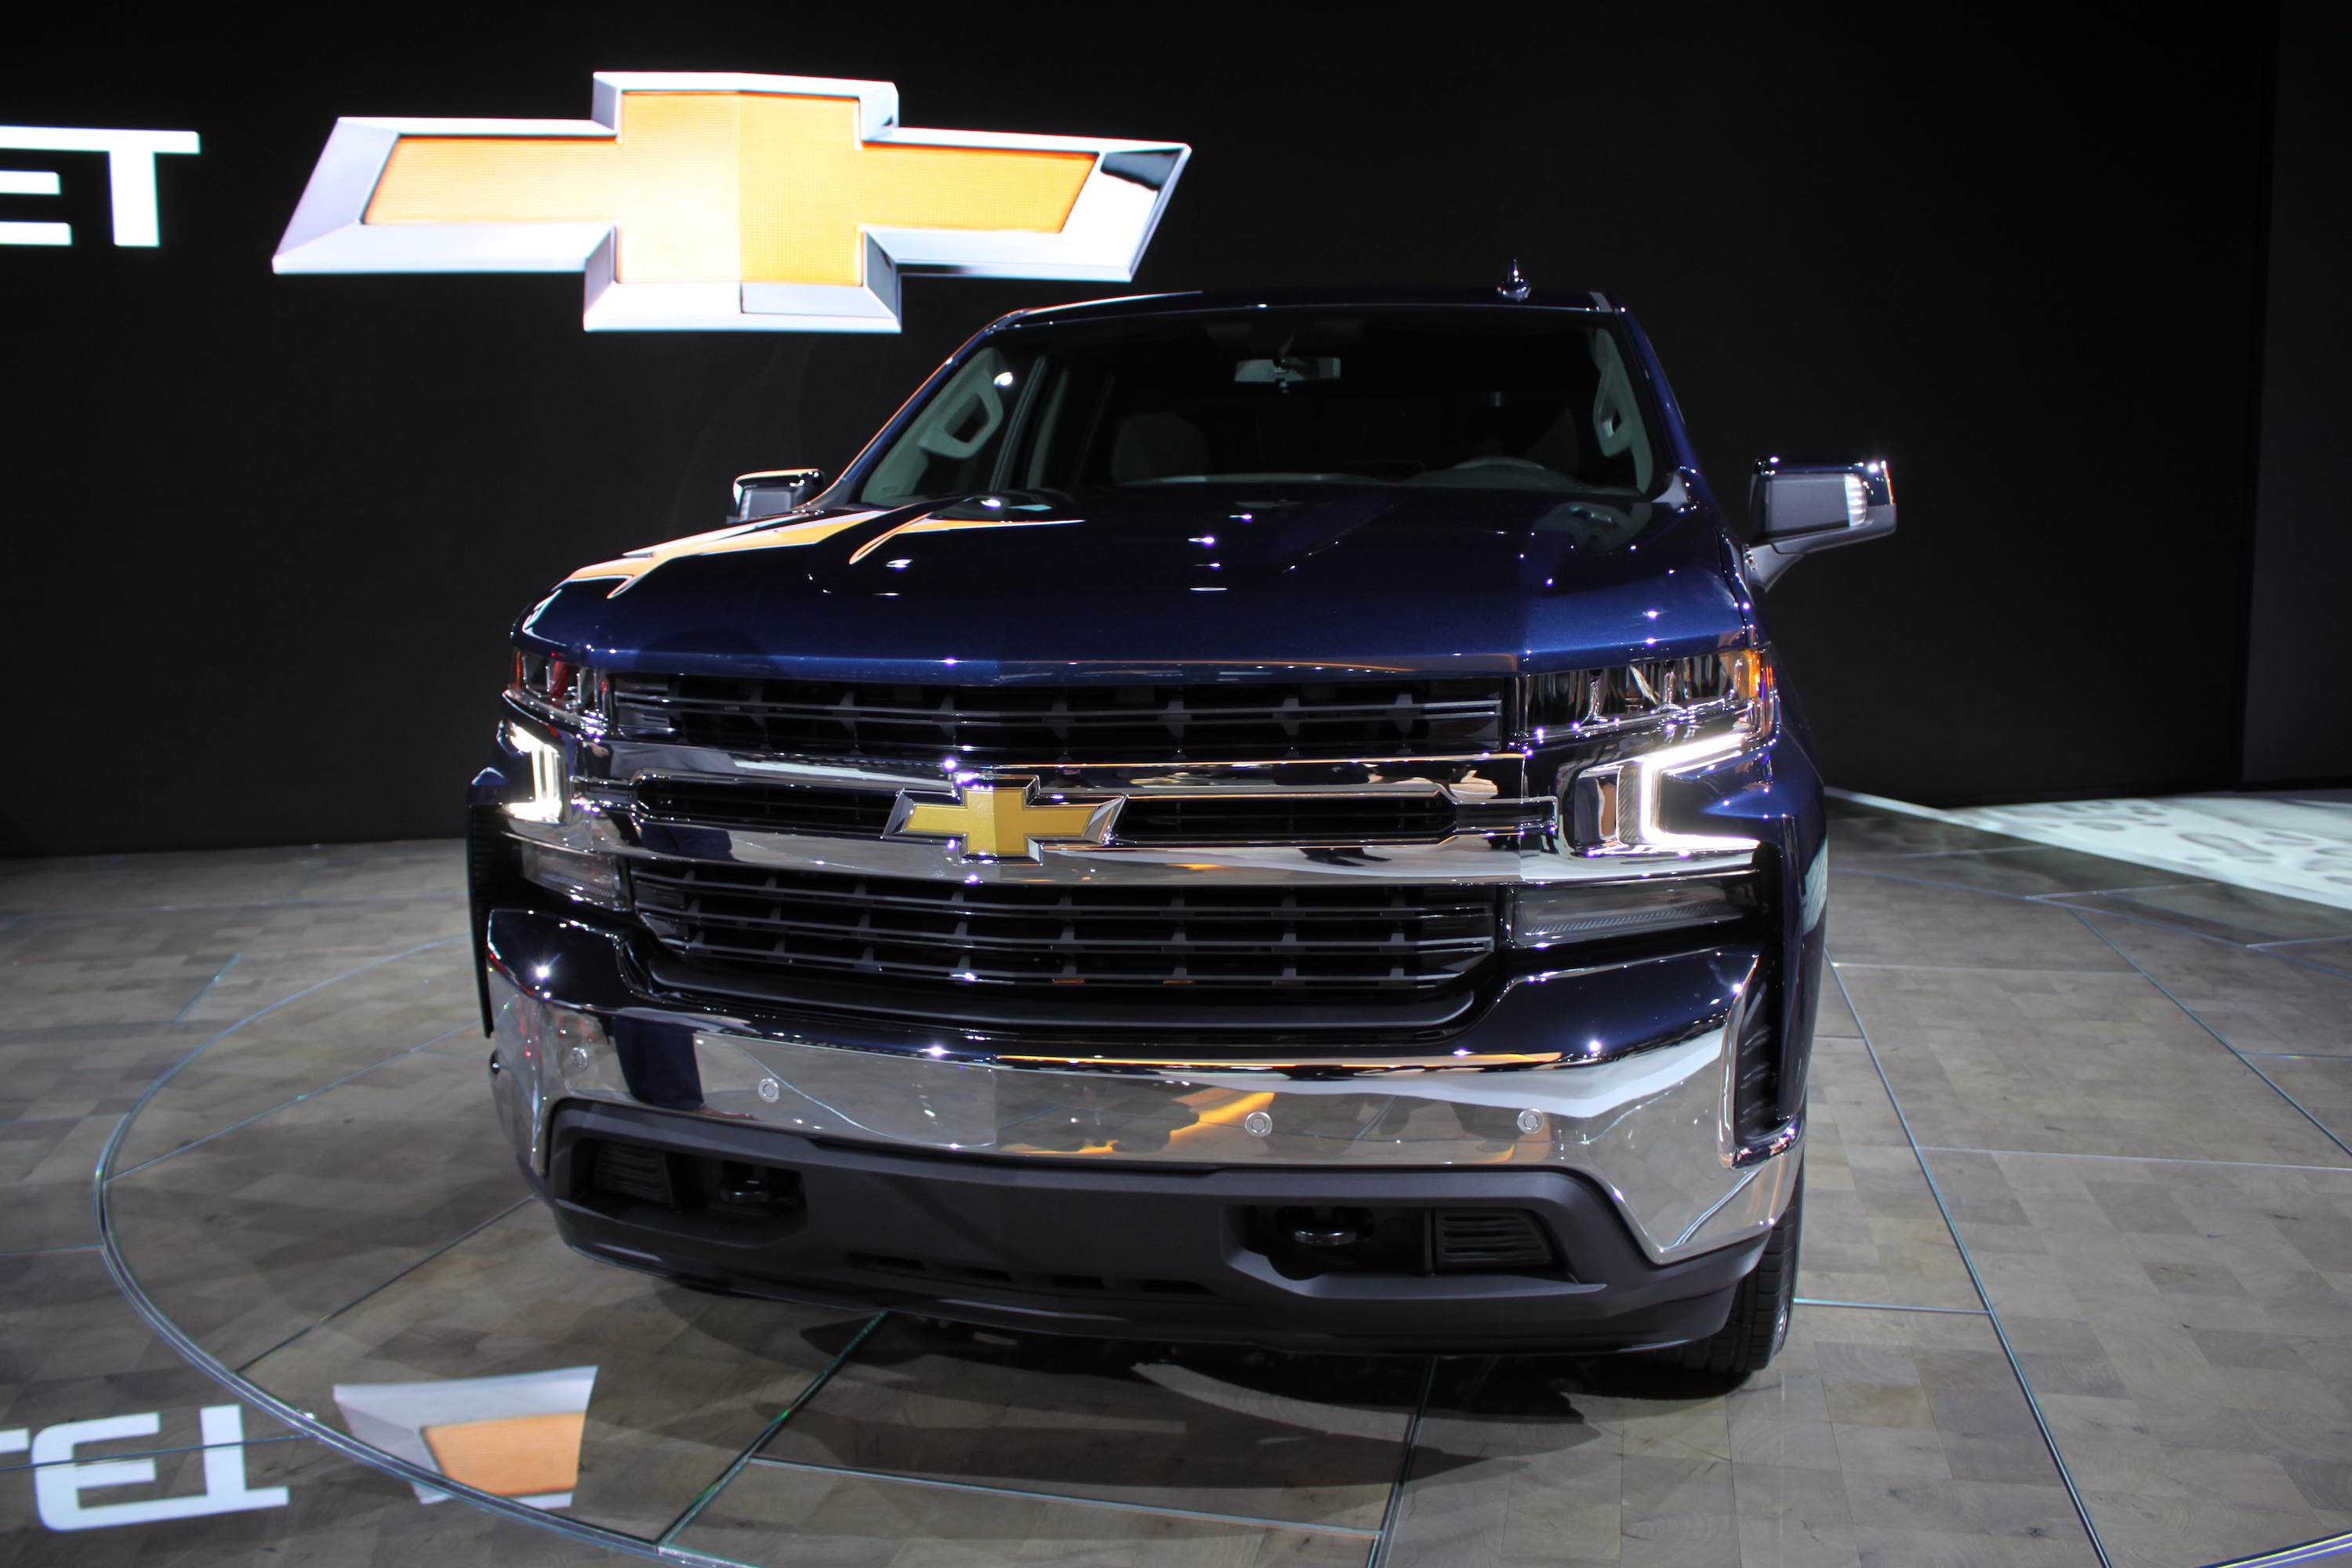 silverado chevrolet competition burnout duramax cool the chevy stomps prevnext trucks diesel and traffic a stops